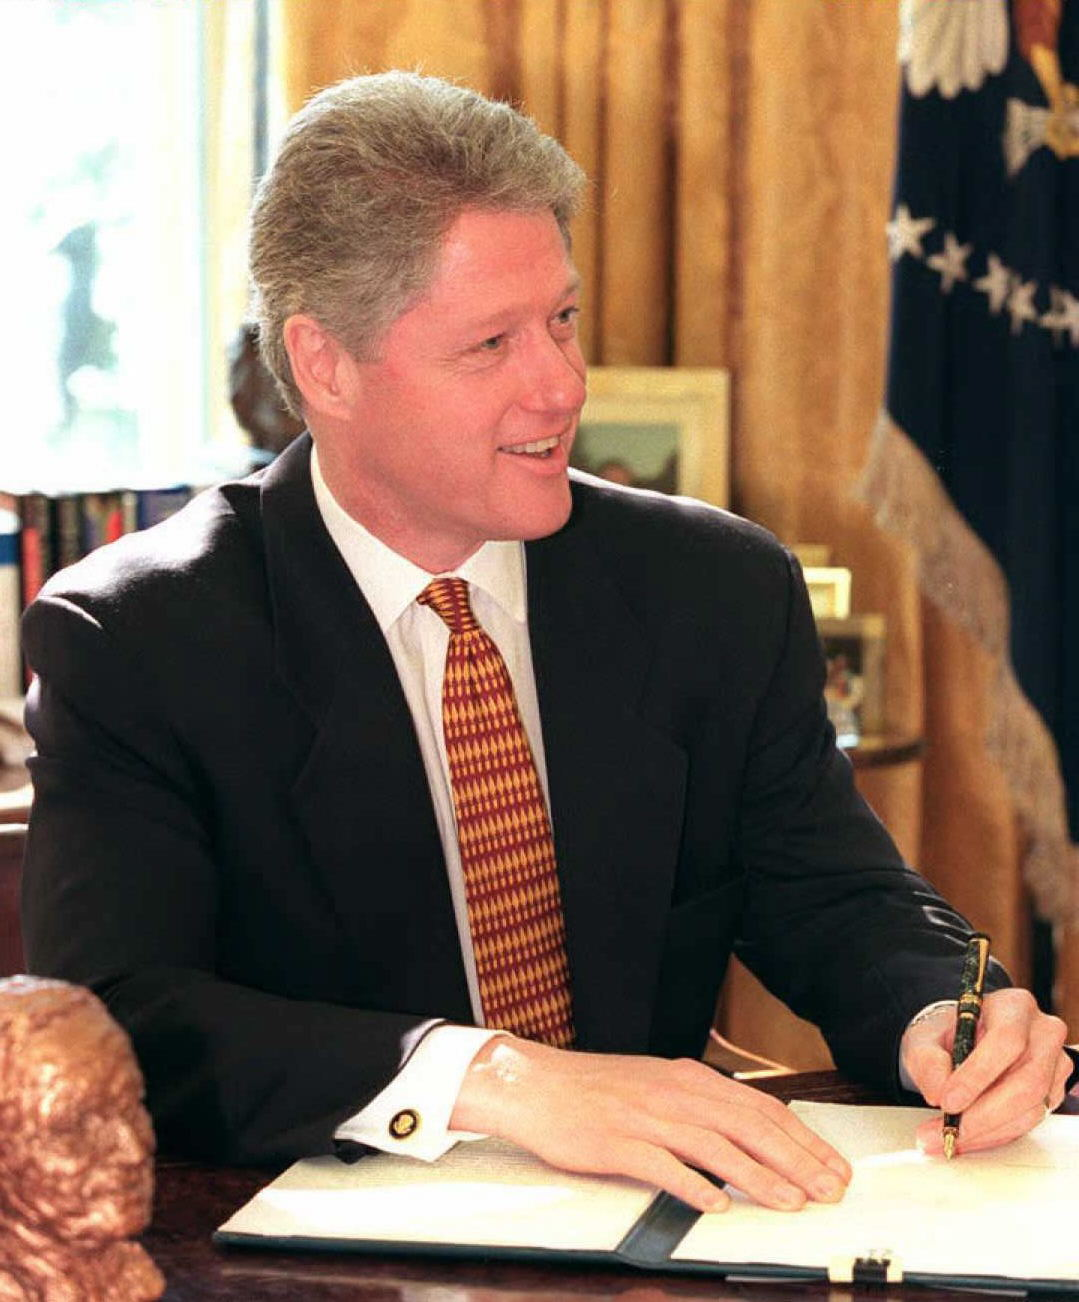 Image result for president clinton signing a congressional  resolution in 1994